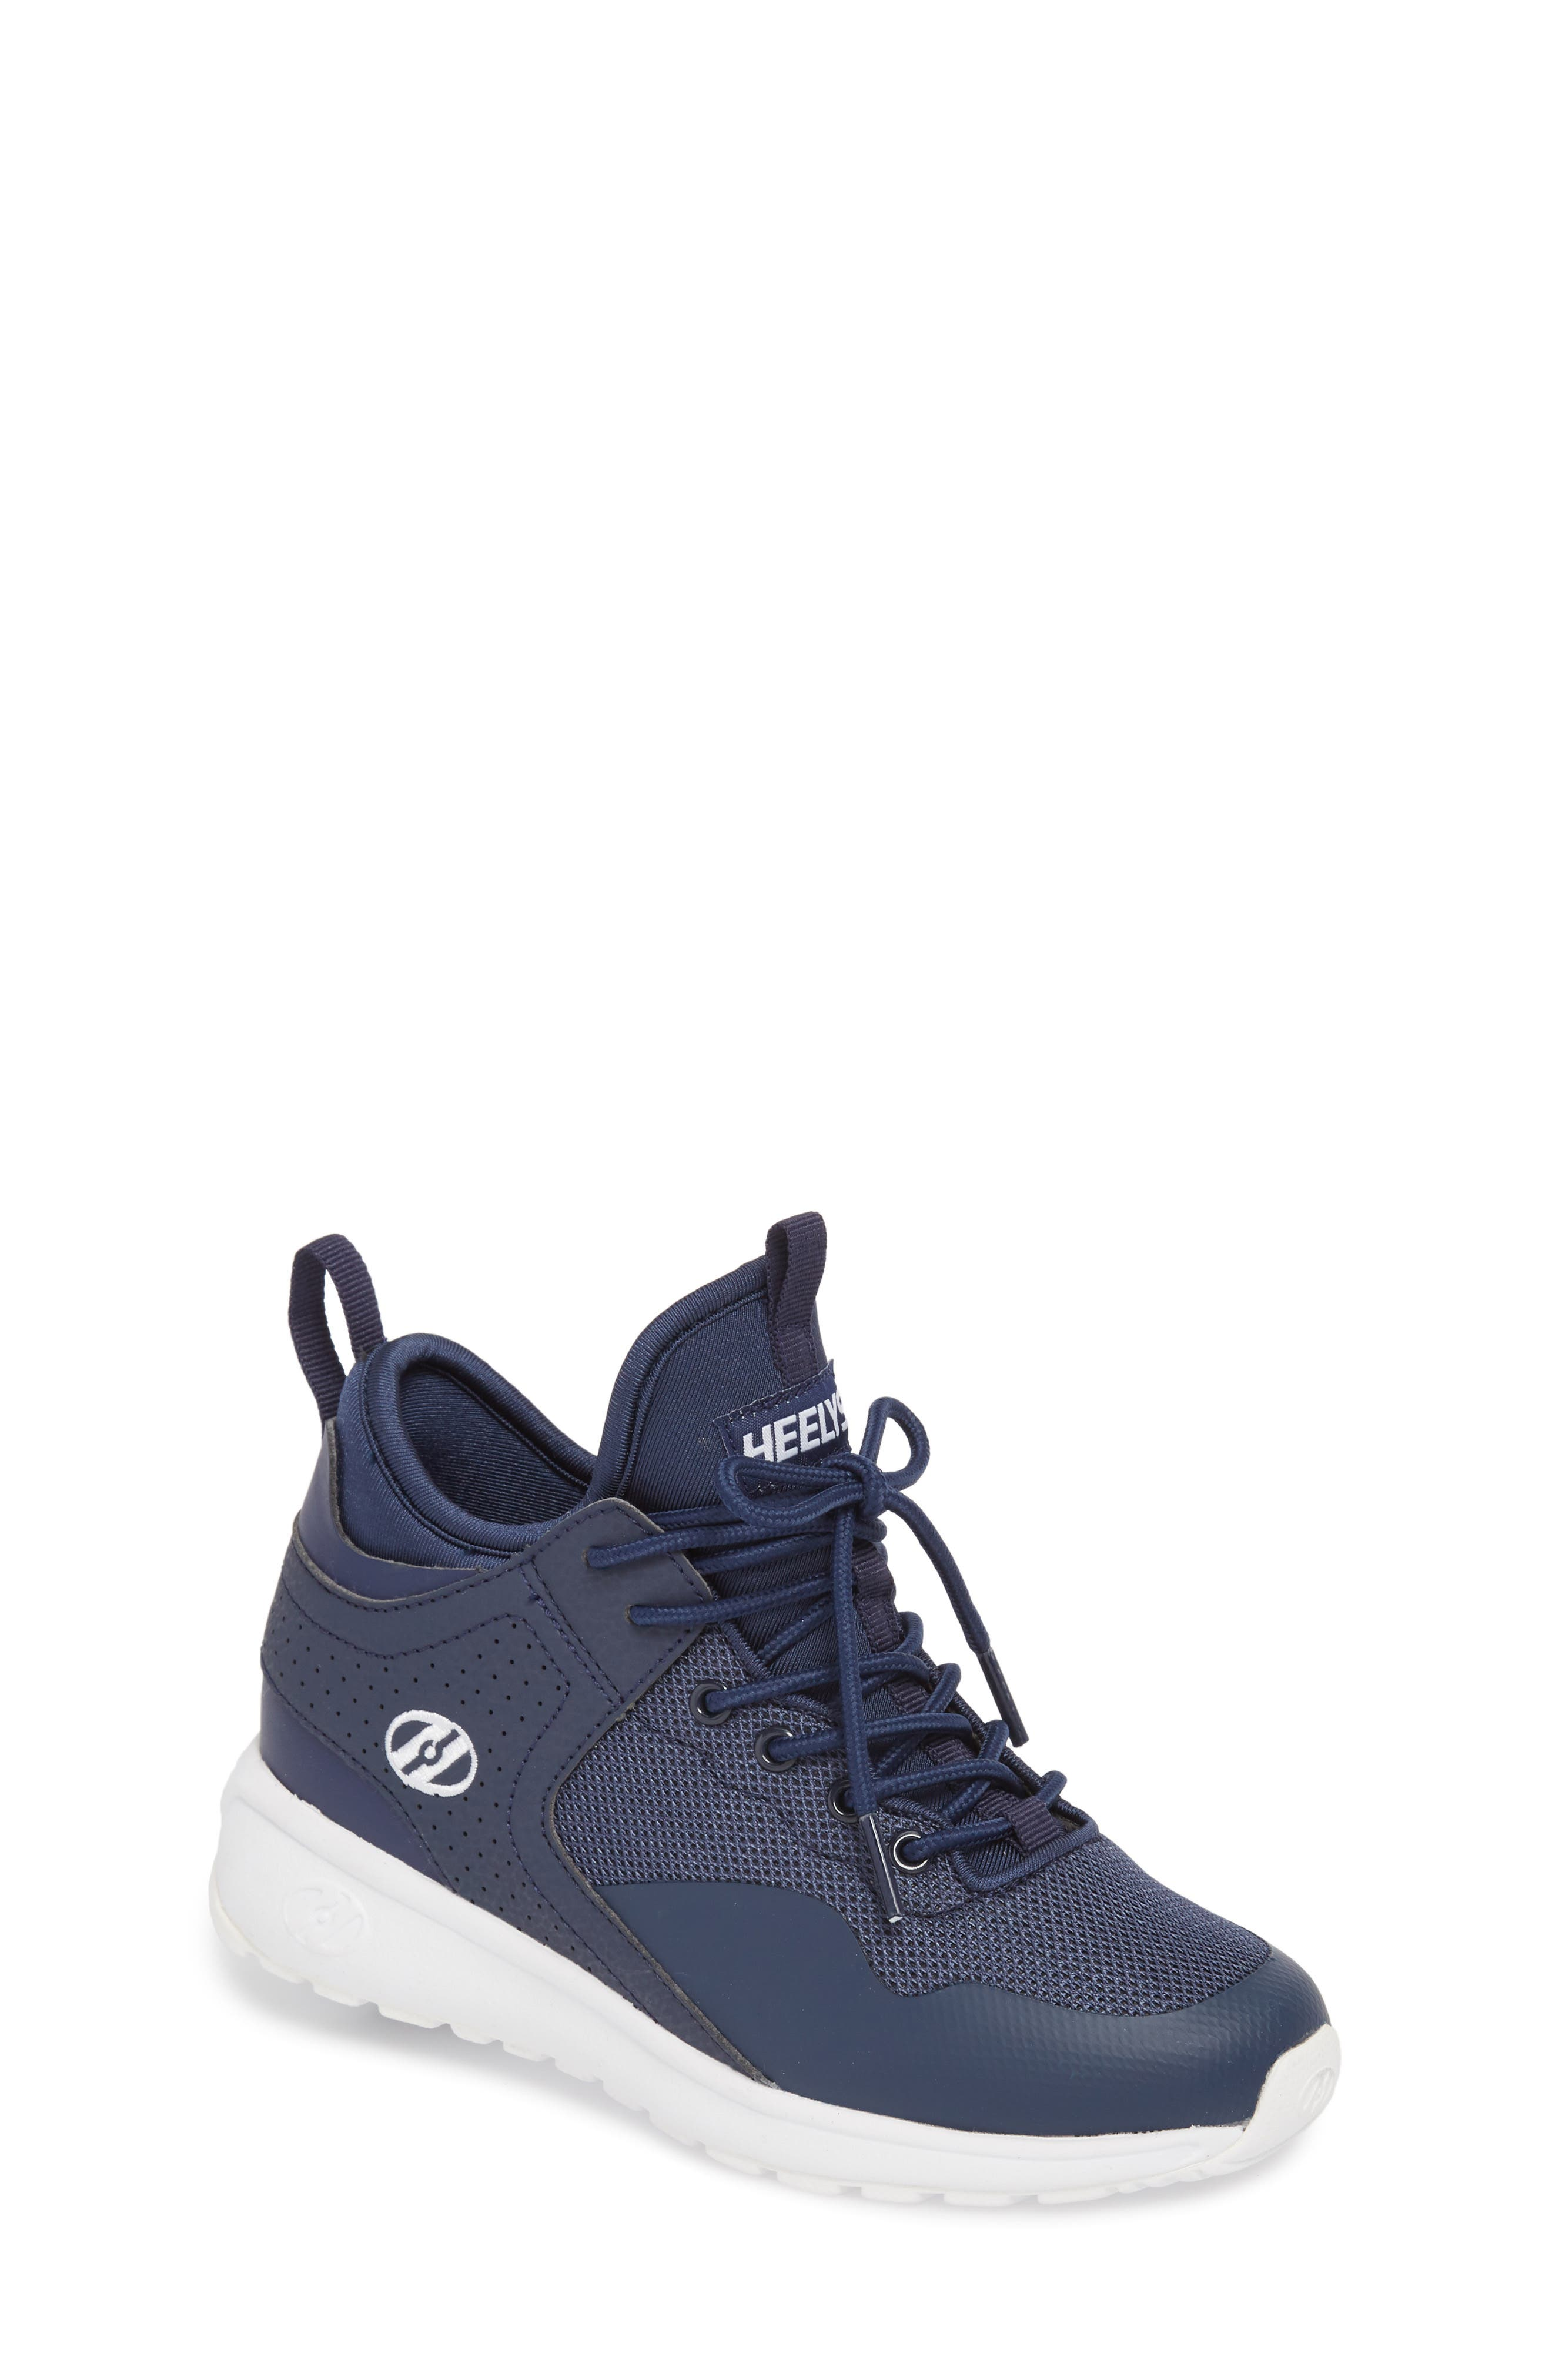 Piper Sneaker,                             Main thumbnail 1, color,                             Navy/ White